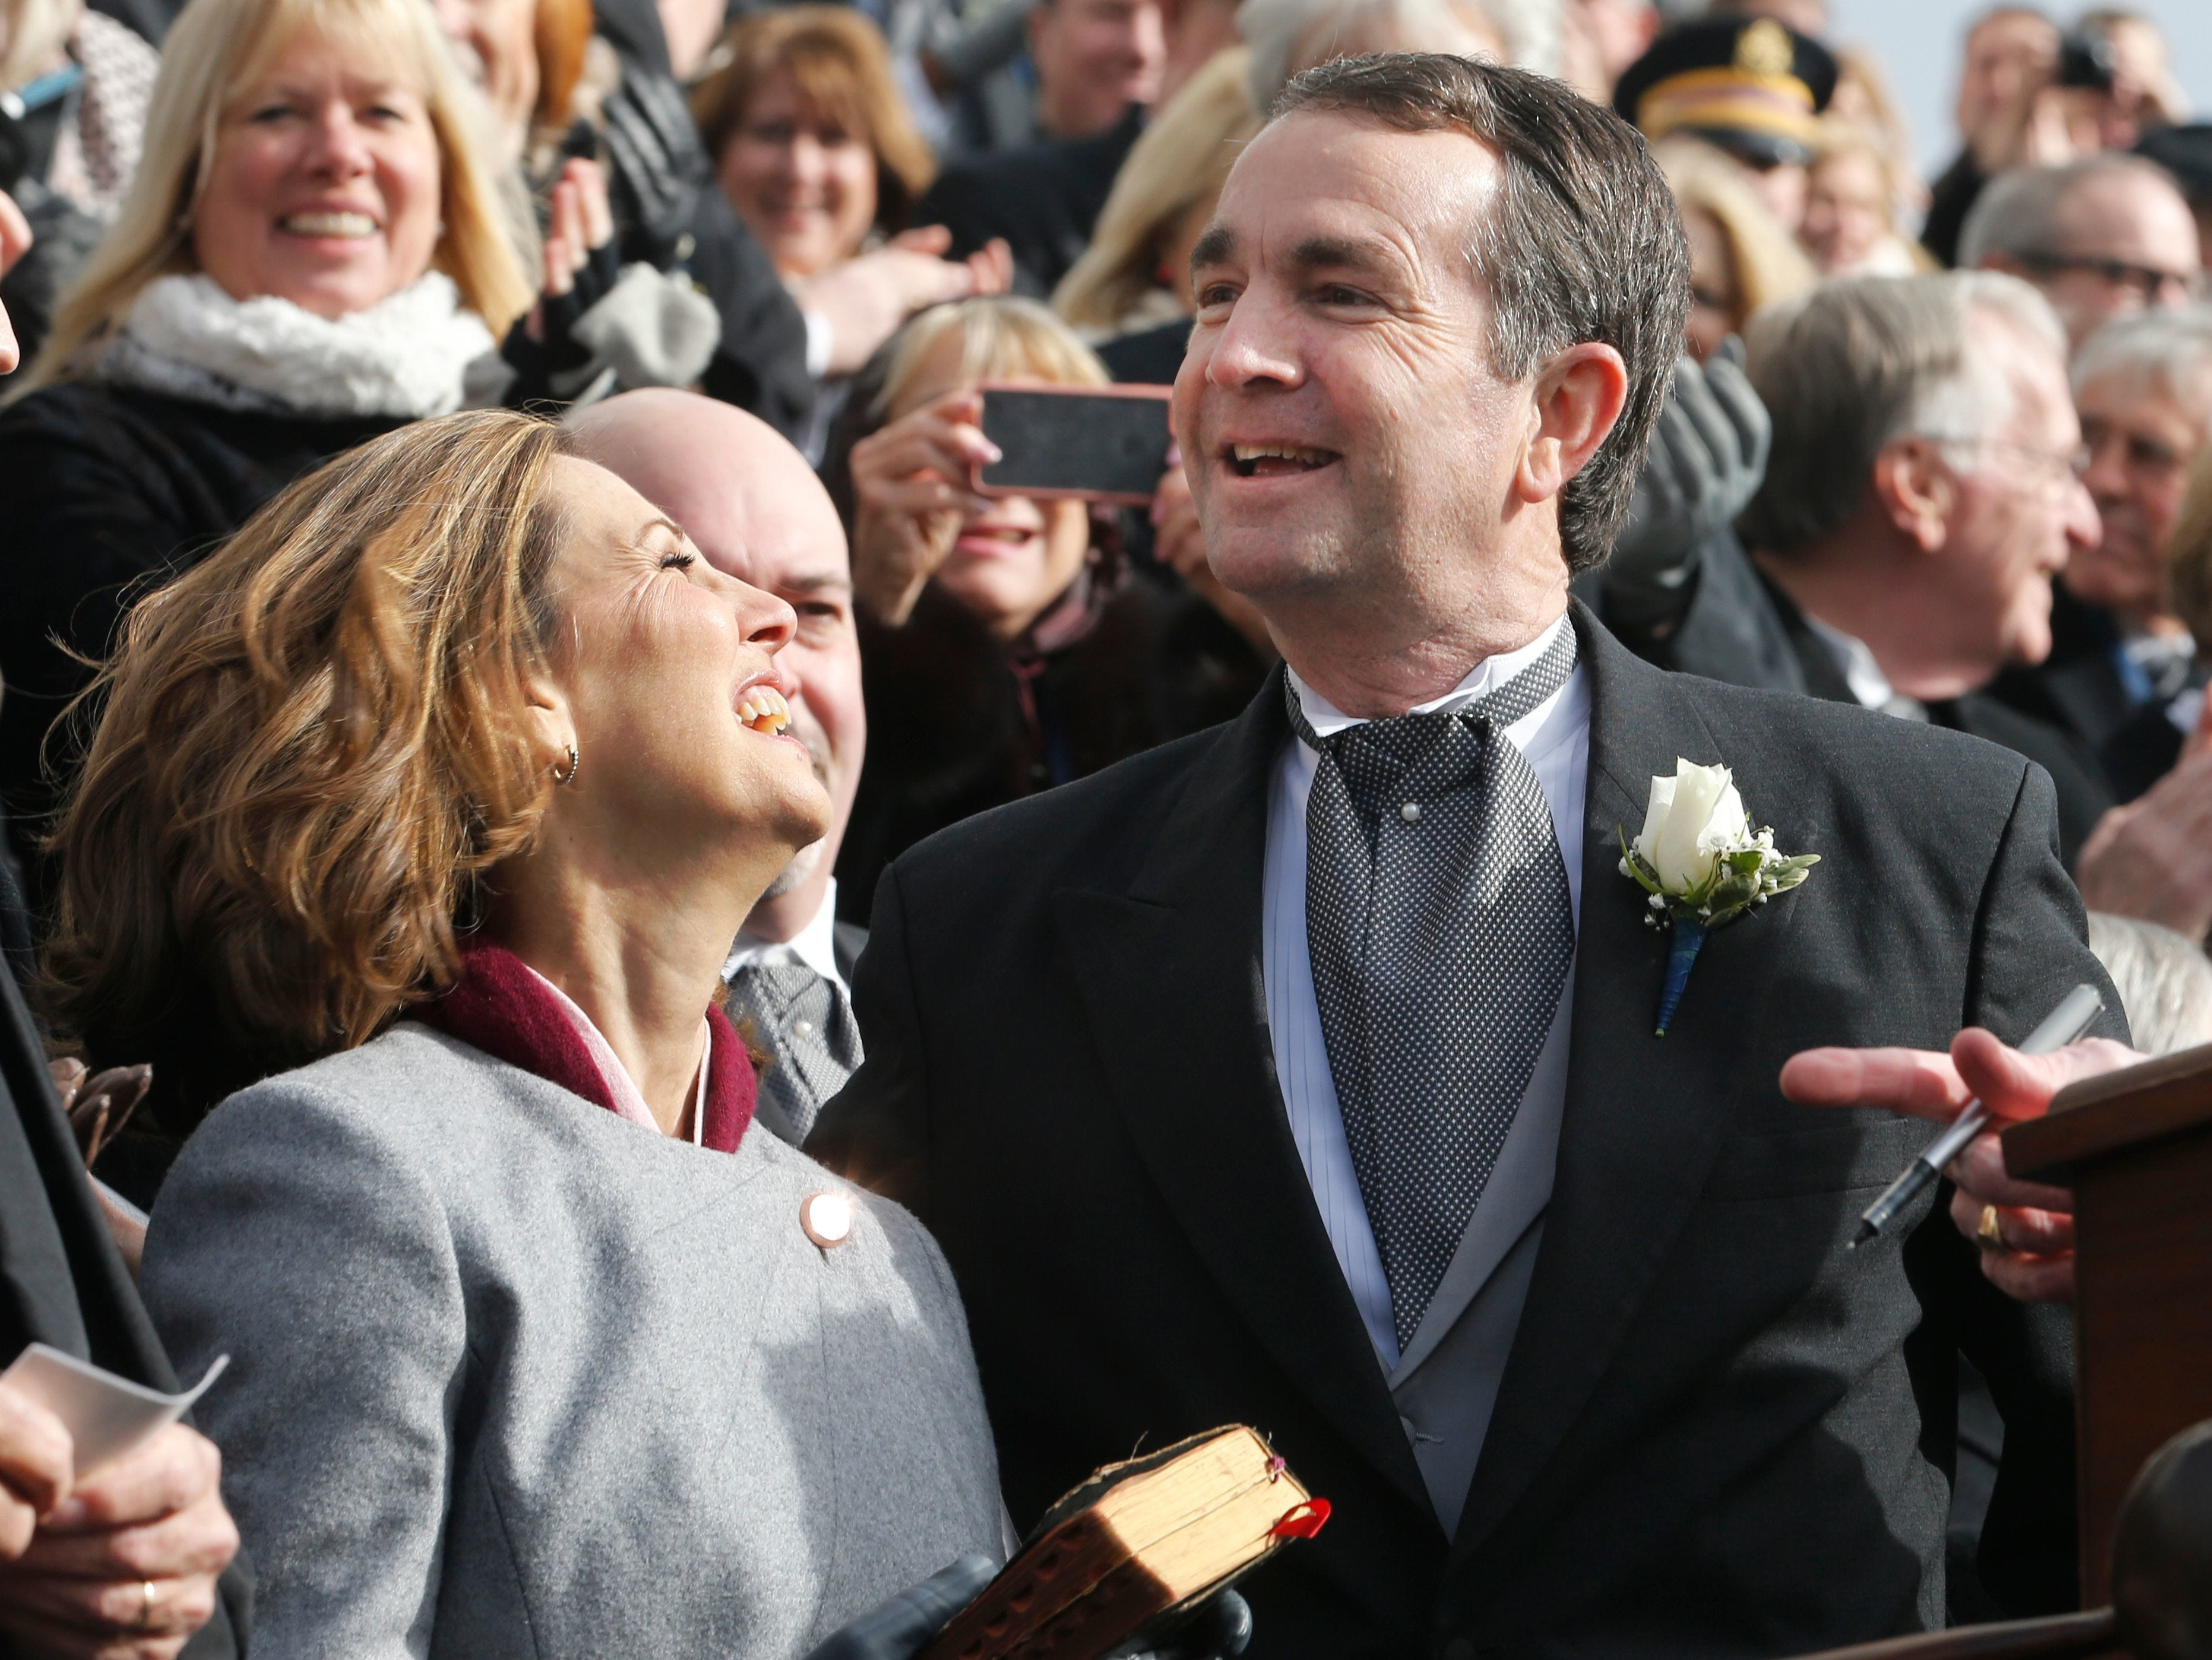 Gov. Ralph Northam, right, and his wife, Pam, smile after he took the oath of office during inaugural ceremonies at the Capitol in Richmond on Saturday, Jan. 13, 2018.